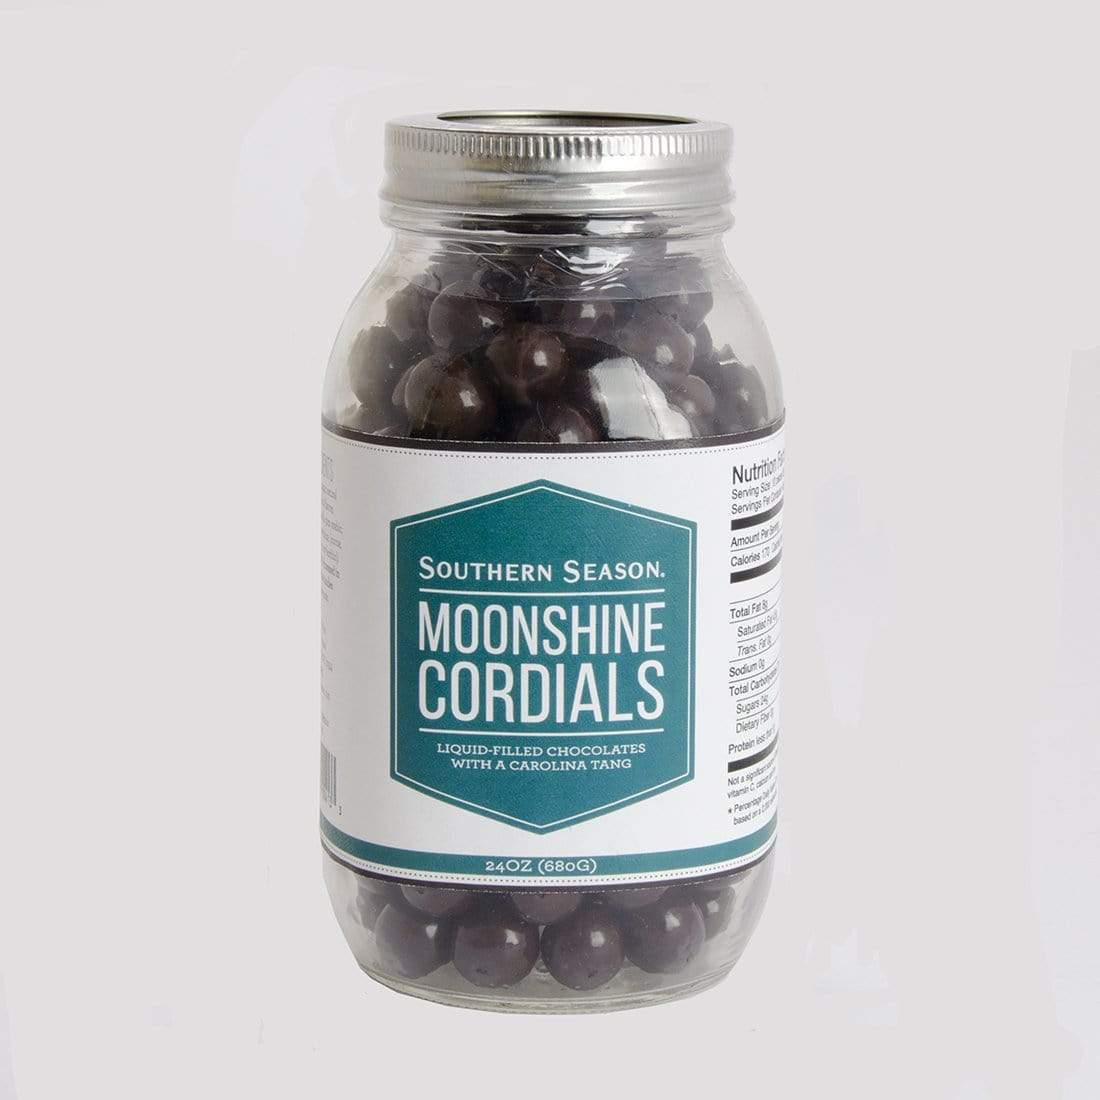 Southern Season Southern Season Moonshine Chocolate Cordials 24 oz Jar